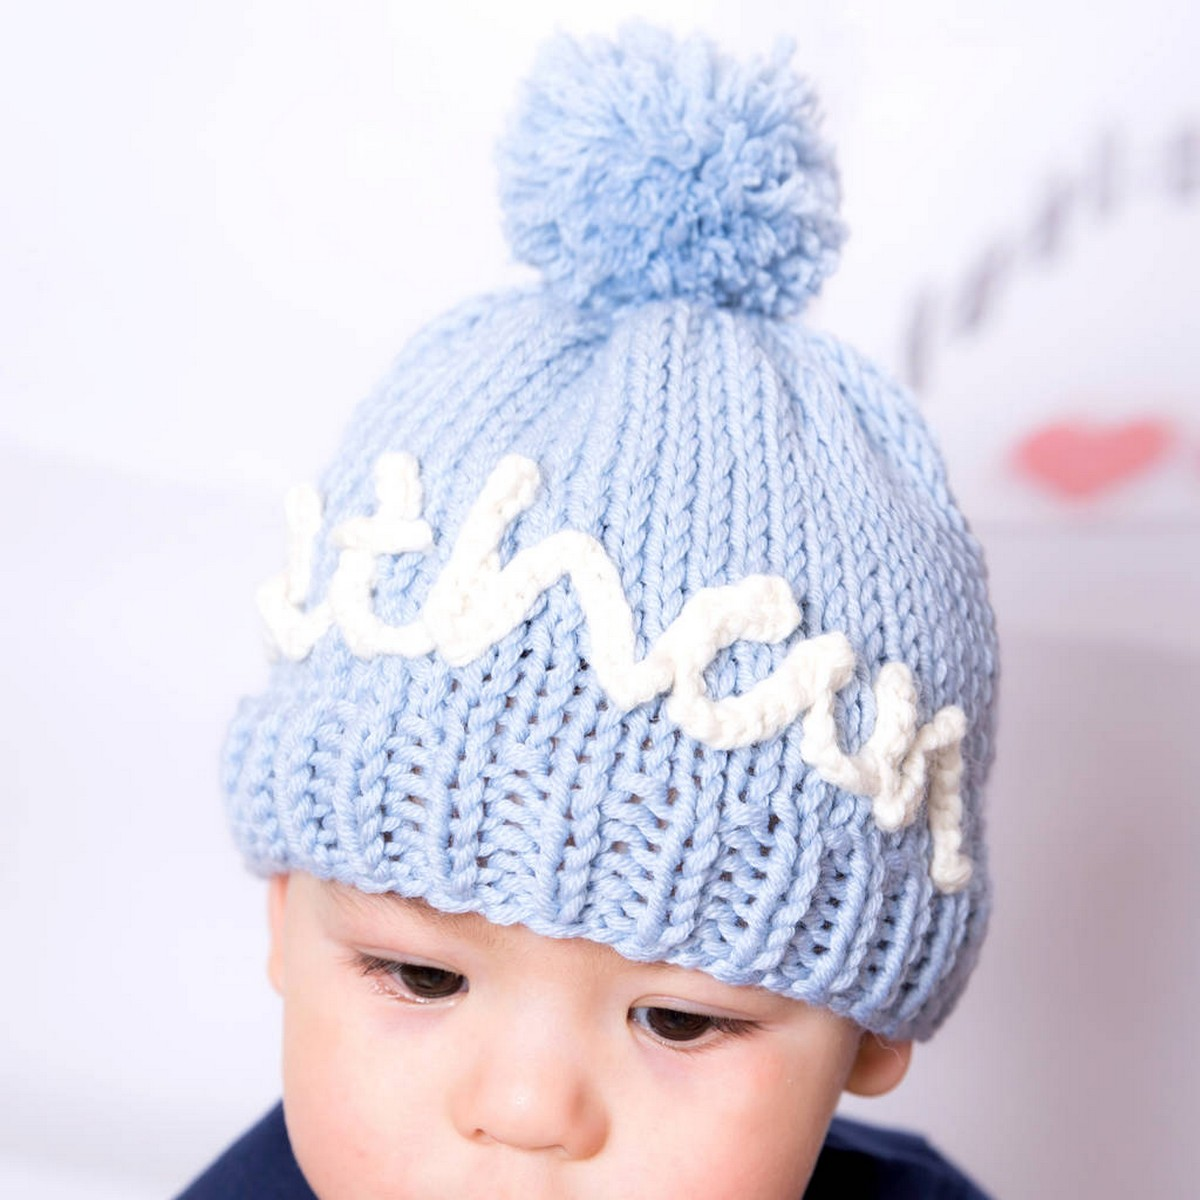 These knit children's hat patterns are adorable knit hats for kids and they come in all shapes and sizes. You'll find animal patterns and colorful knit patterns among many other designs.